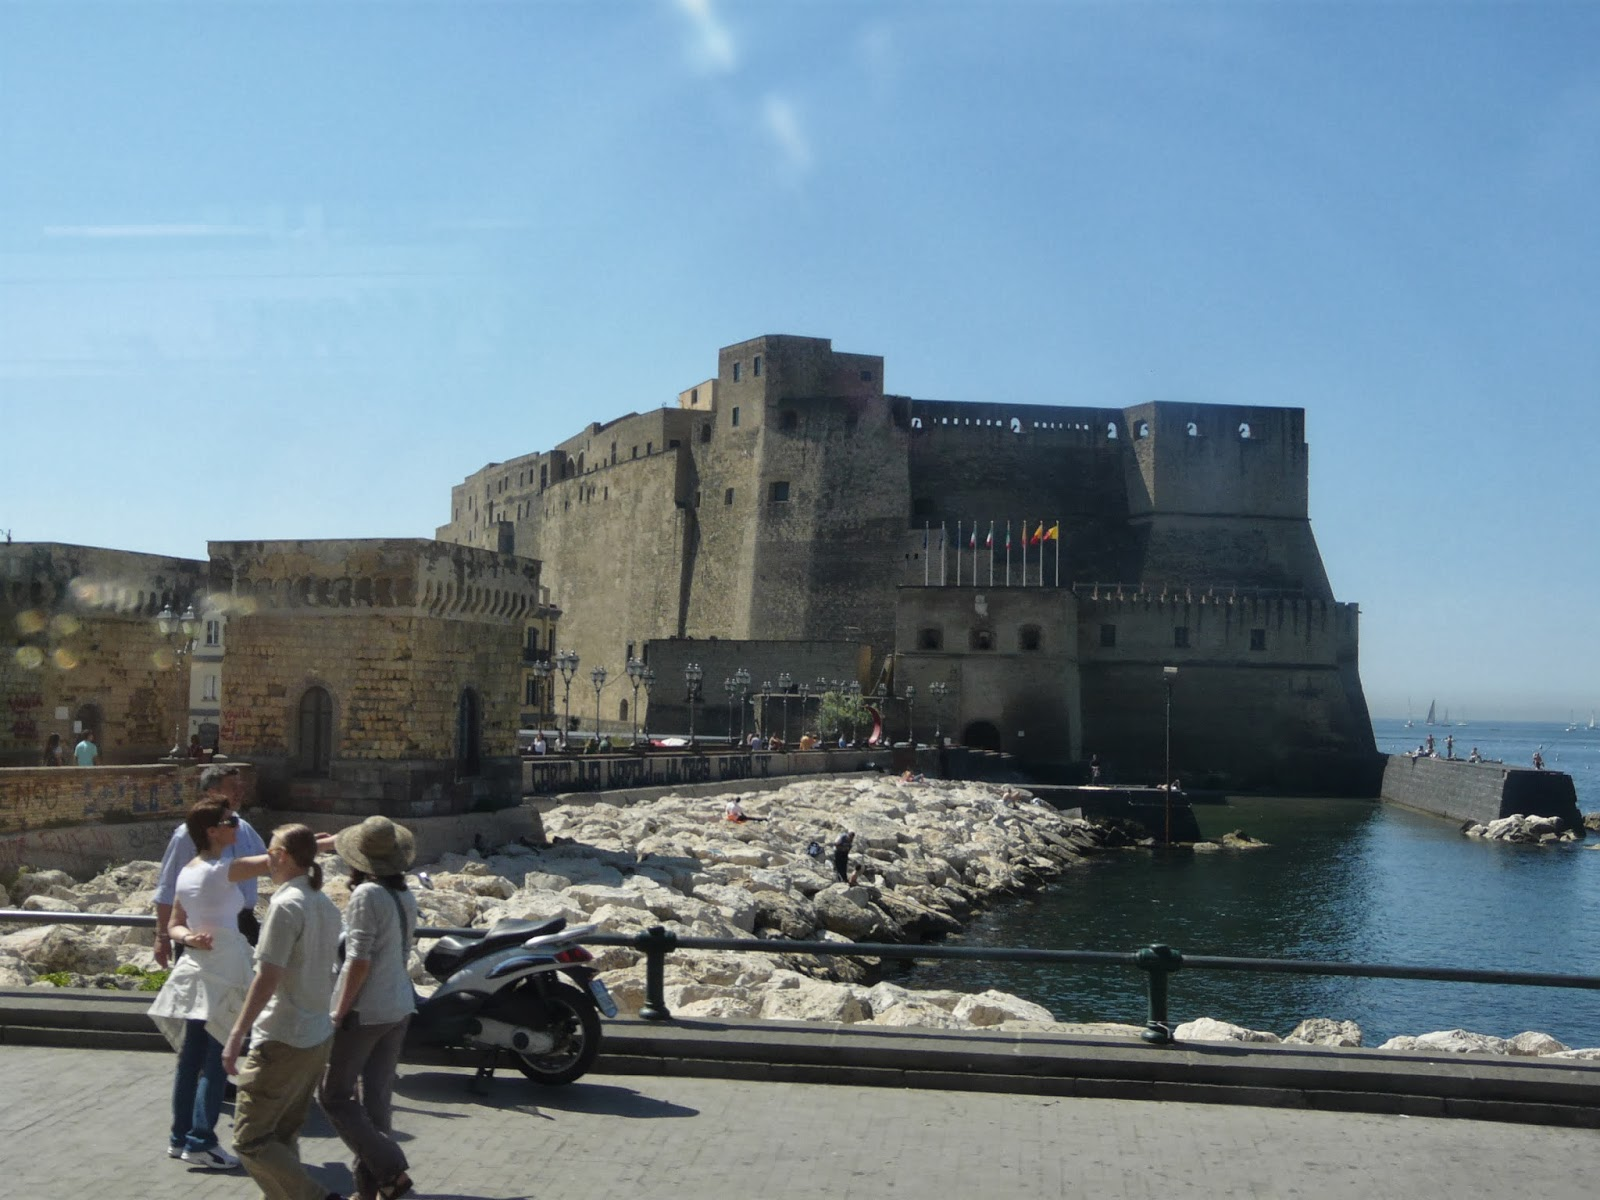 Boat-Racing-Challenge-at-Naples-Italy-Beauty-of-Italy-Castel-Nuovo